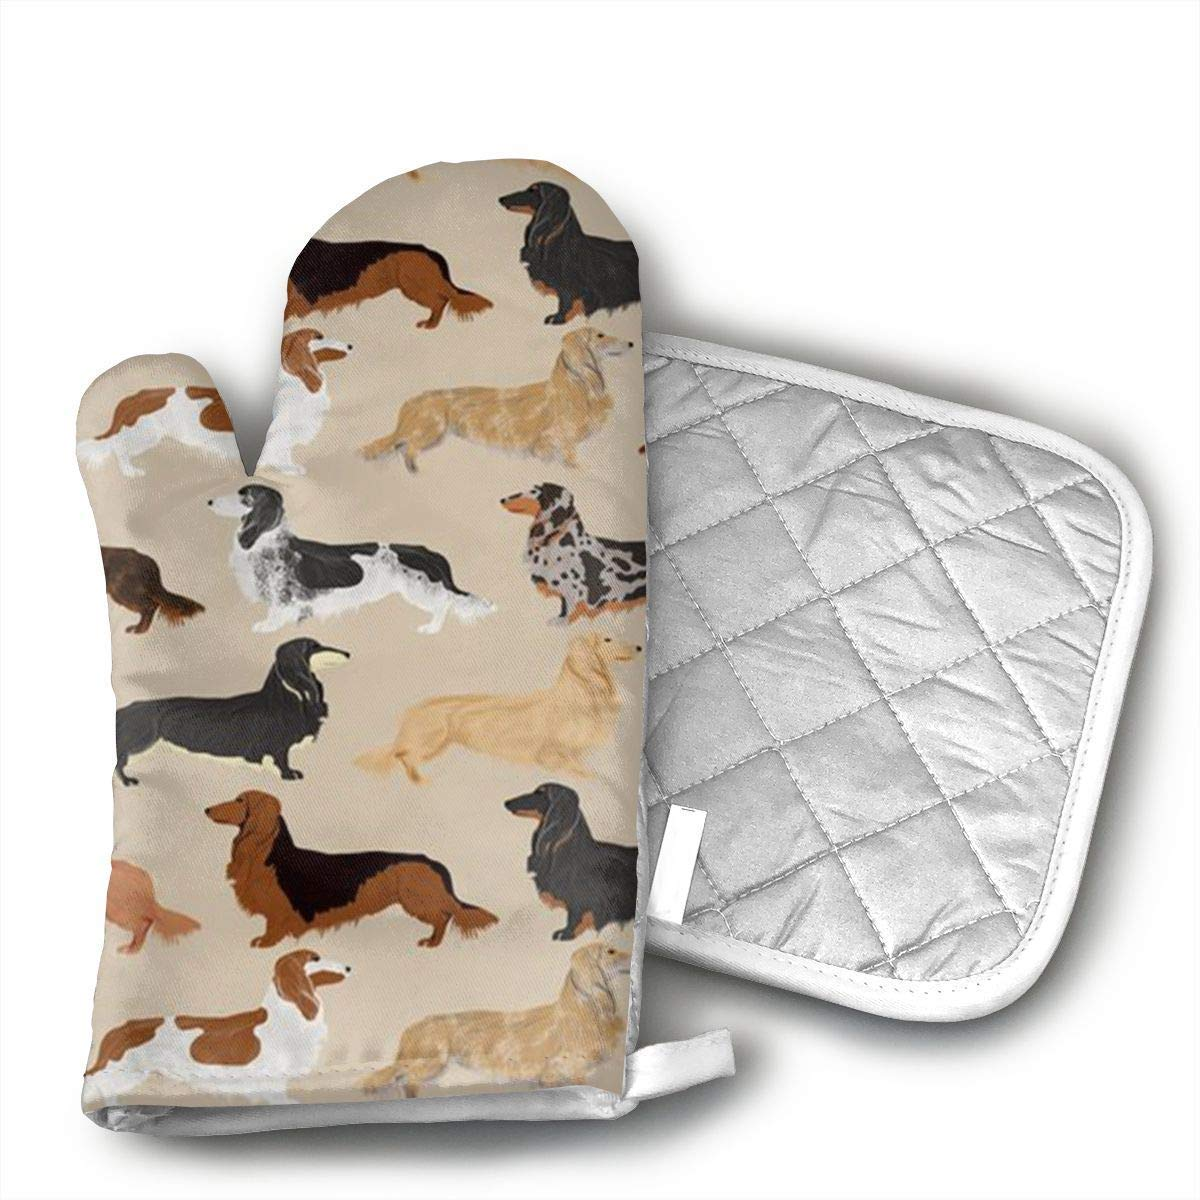 NoveltyGloves Long Haired Dachshunds Dogs Oven Mitts,Professional Heat Resistant Microwave BBQ Oven Insulation Thickening Cotton Gloves Baking Pot Mitts Soft Inner Lining Kitchen Cooking